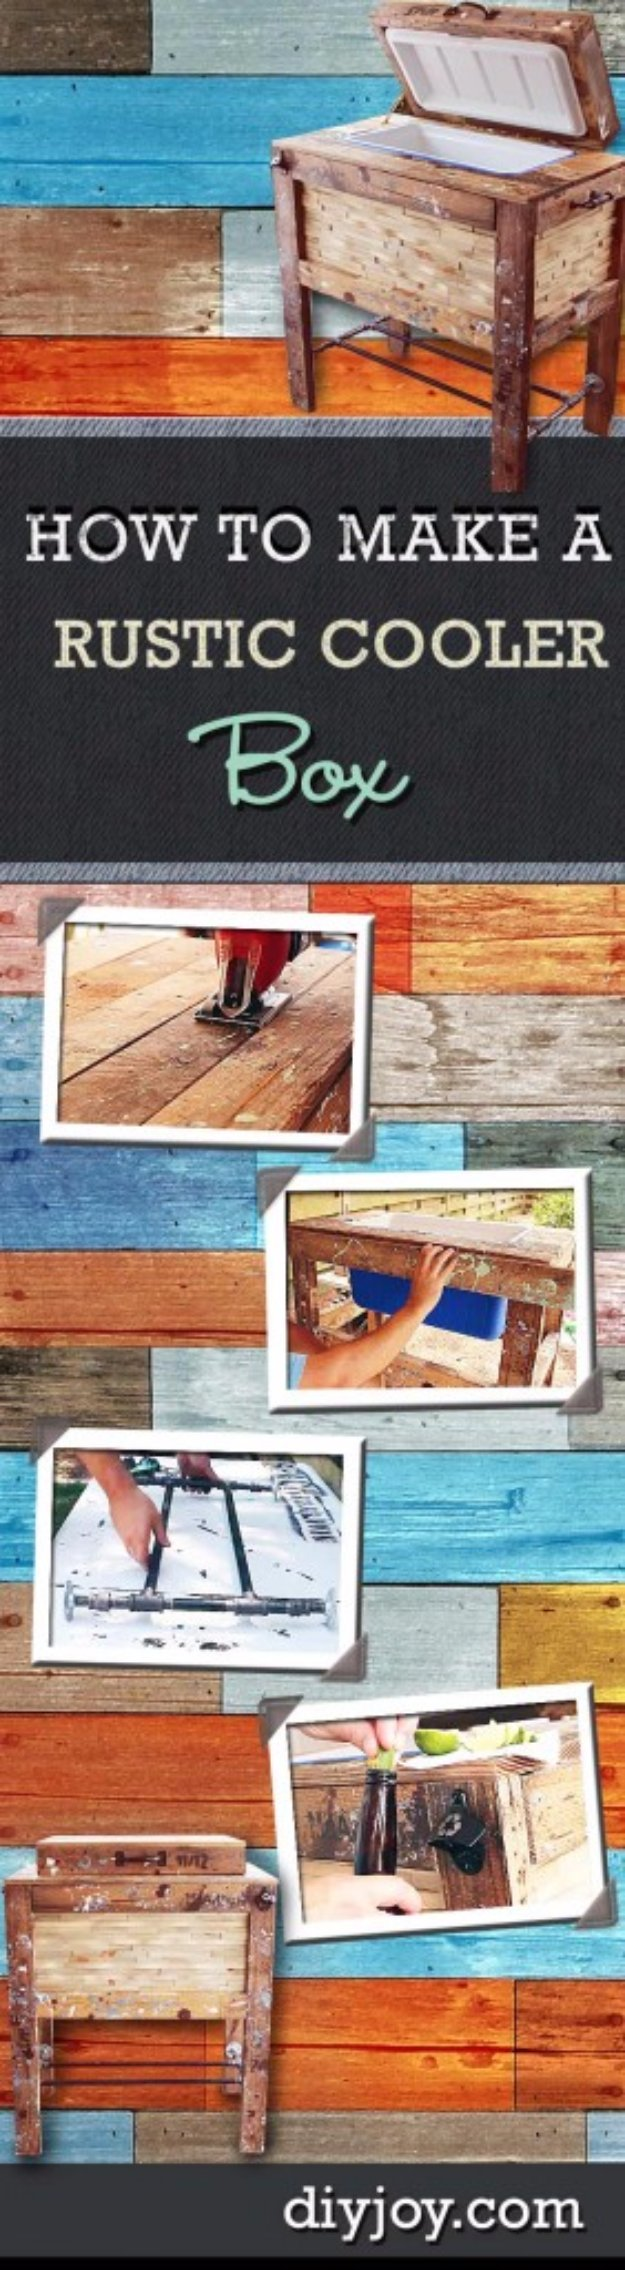 DIY Ideas to Get Your Backyard Ready for Summer - DIY Rustic Pallet Cooler Box - Cool Ideas for the Yard This Summer. Furniture, Games and Fun Outdoor Decor both Adults and Kids Will Enjoy